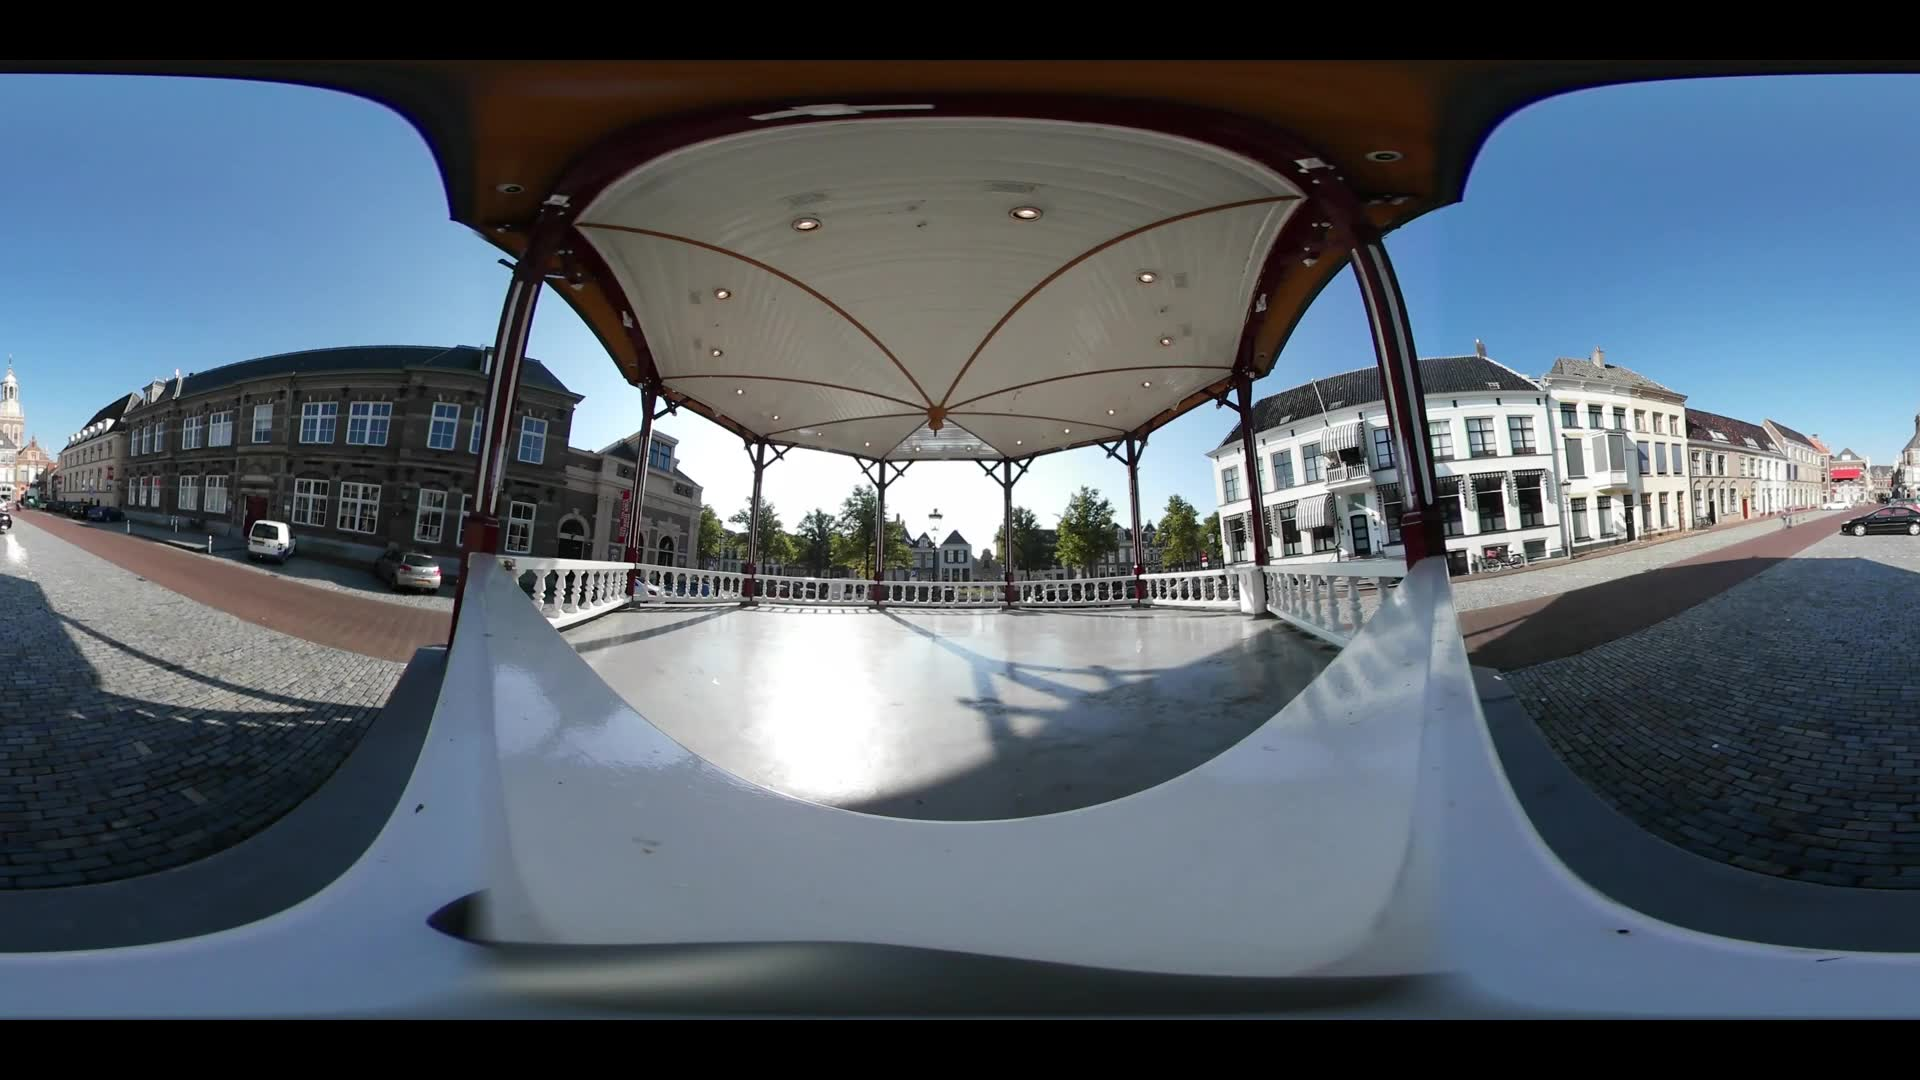 Virtual Reality 360 view from the Nieuwe markt in Kampen The Netherlands